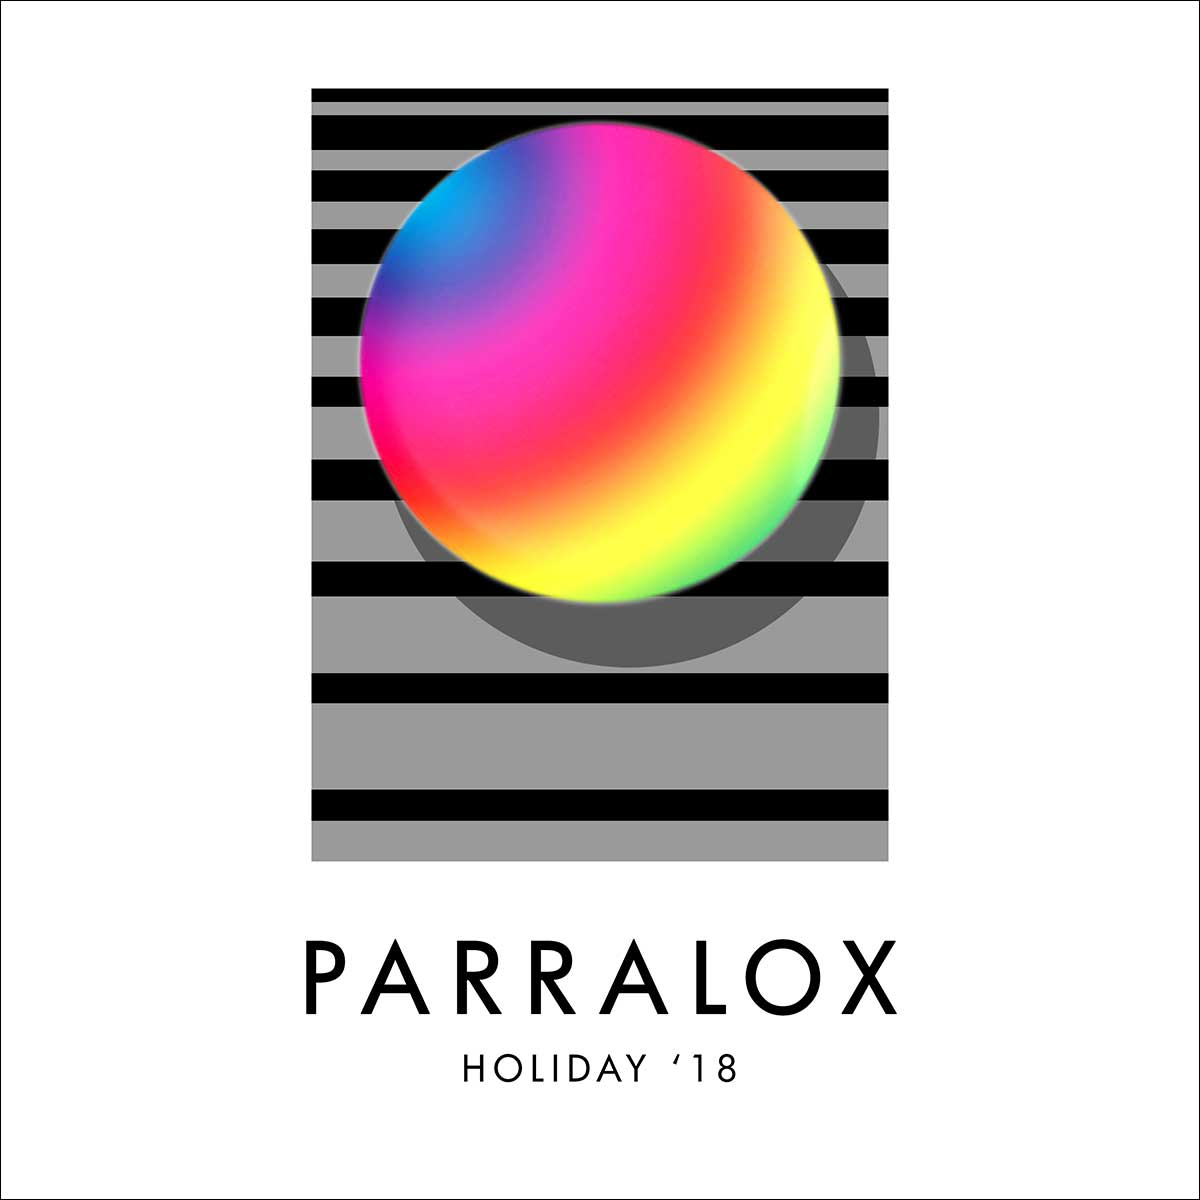 Parralox Holiday 18 1200px